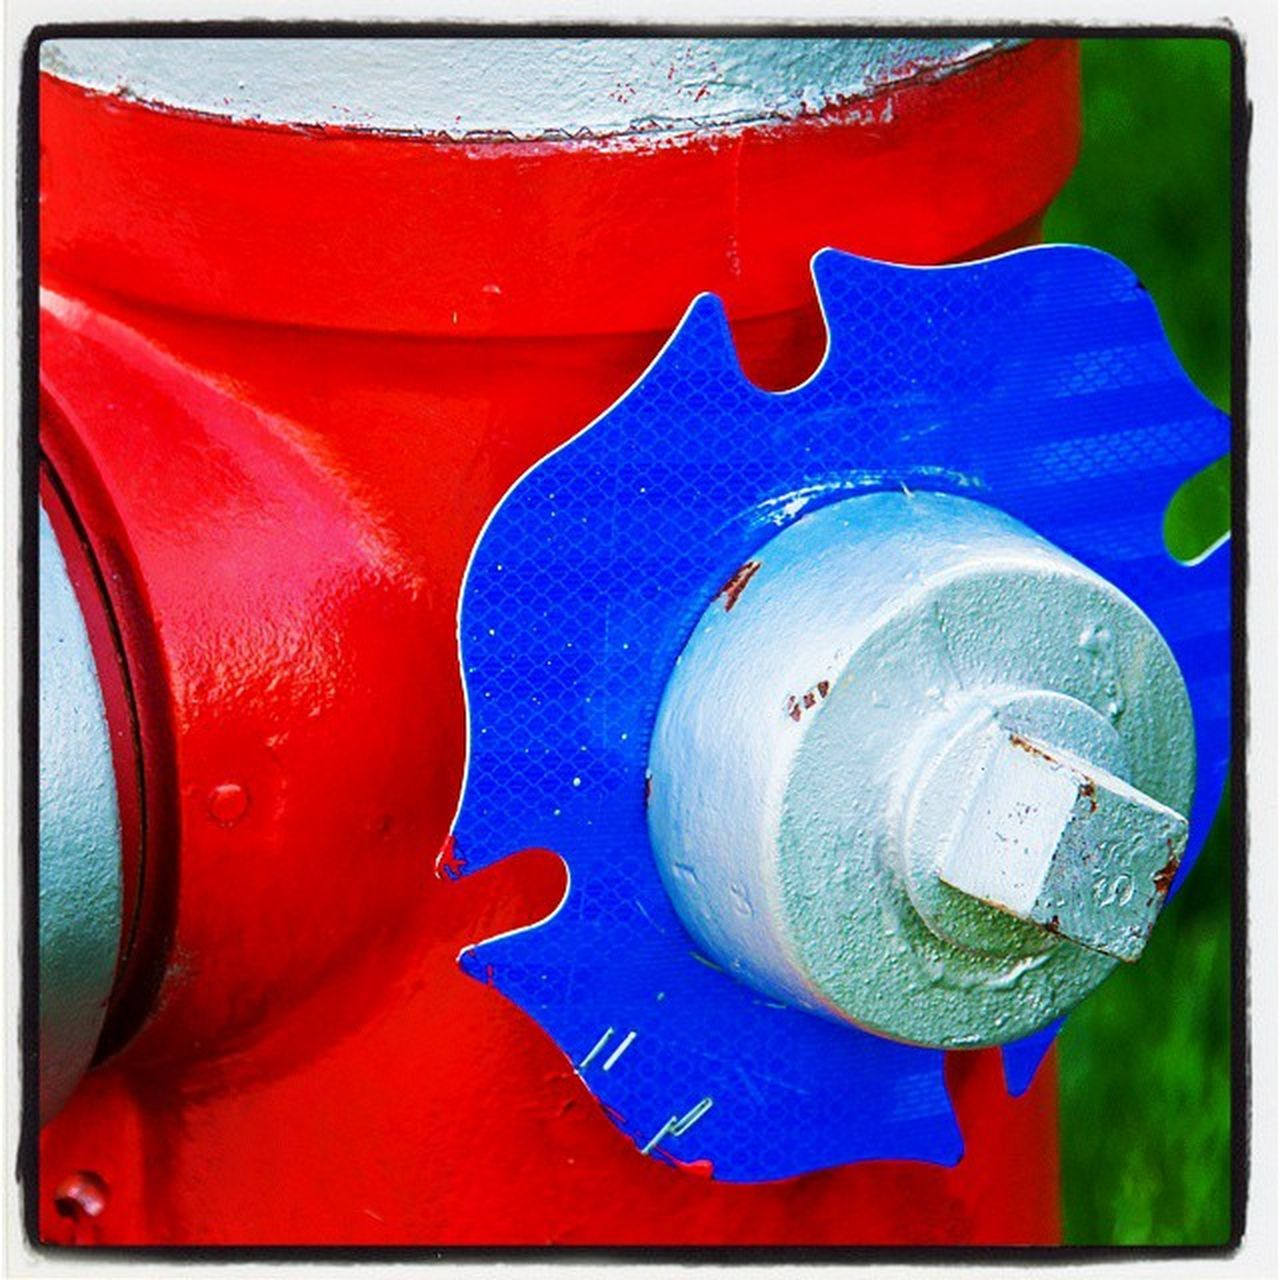 close-up, red, no people, outdoors, day, blue